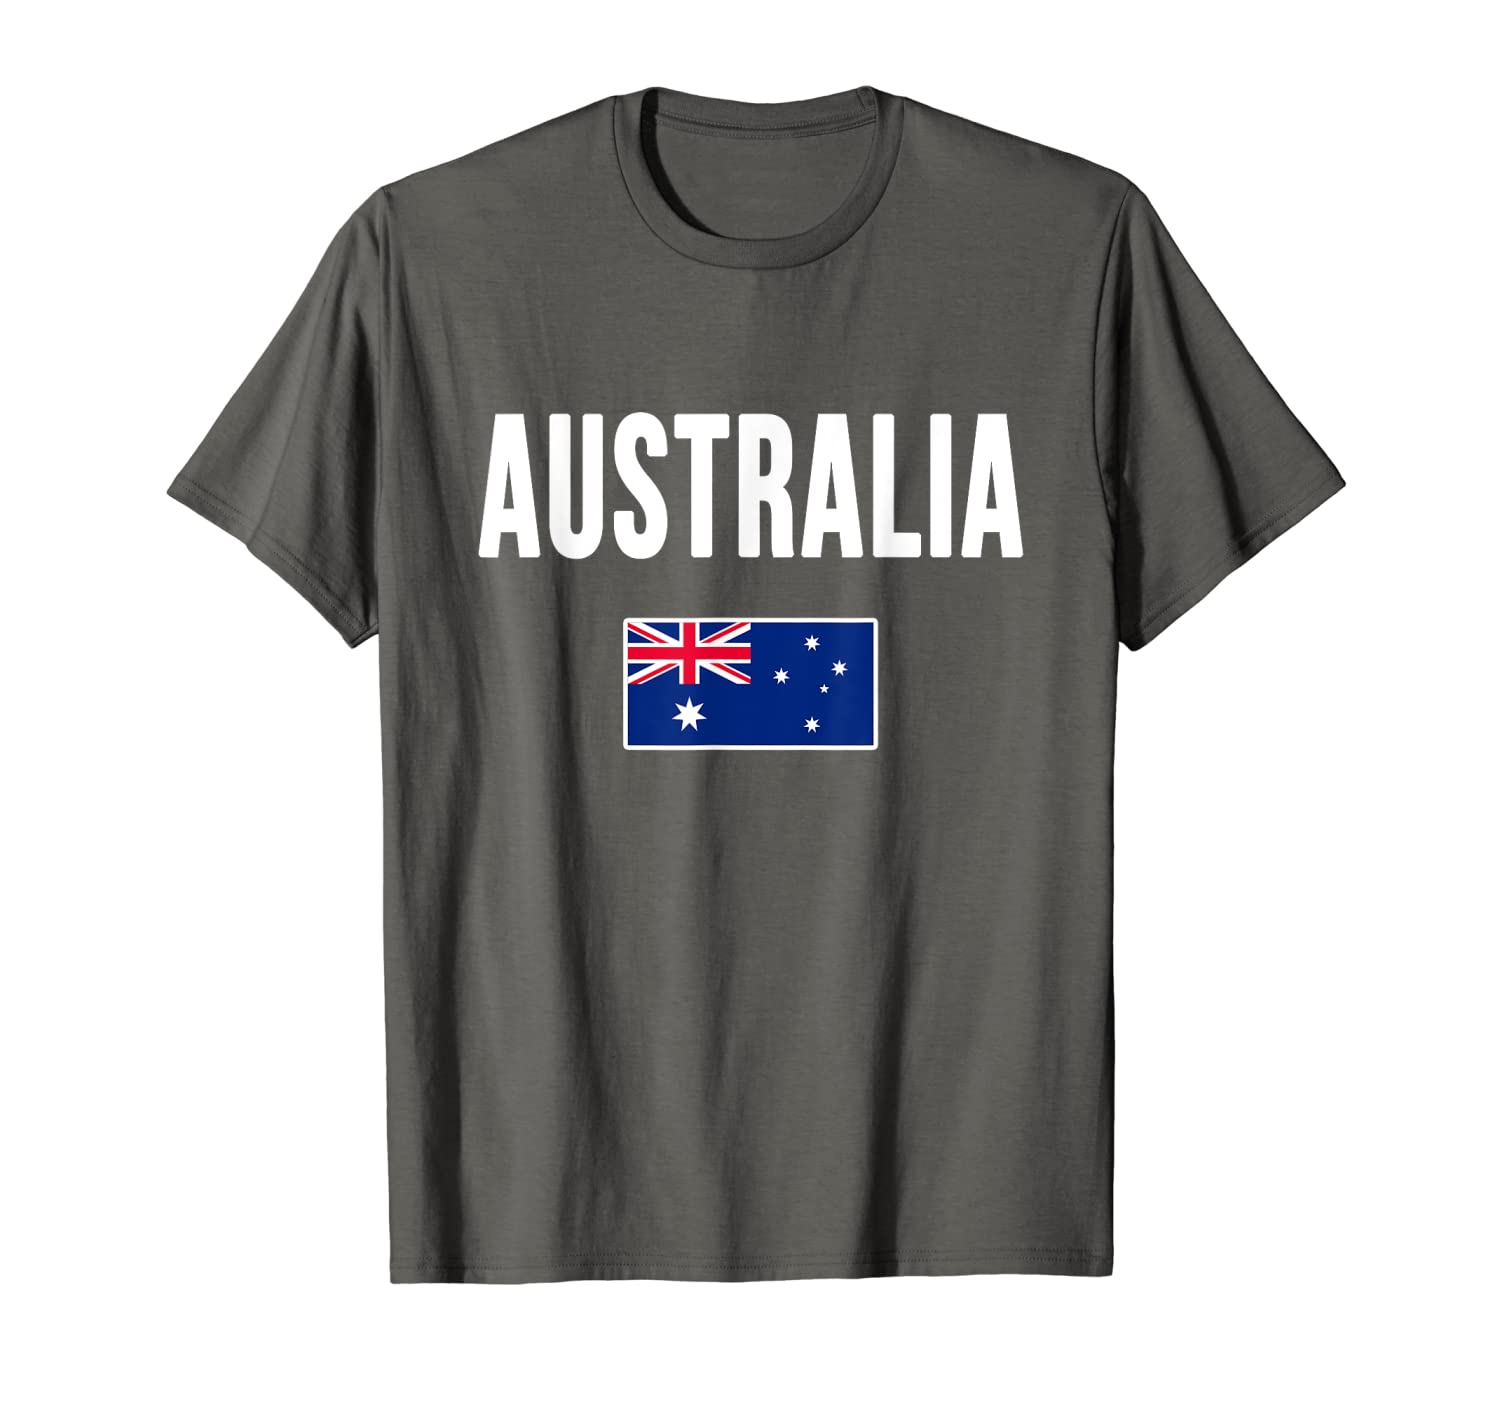 582d60a93 Amazon.com: Australia T-shirt Australian Flag Gift Souvenir Love: Clothing